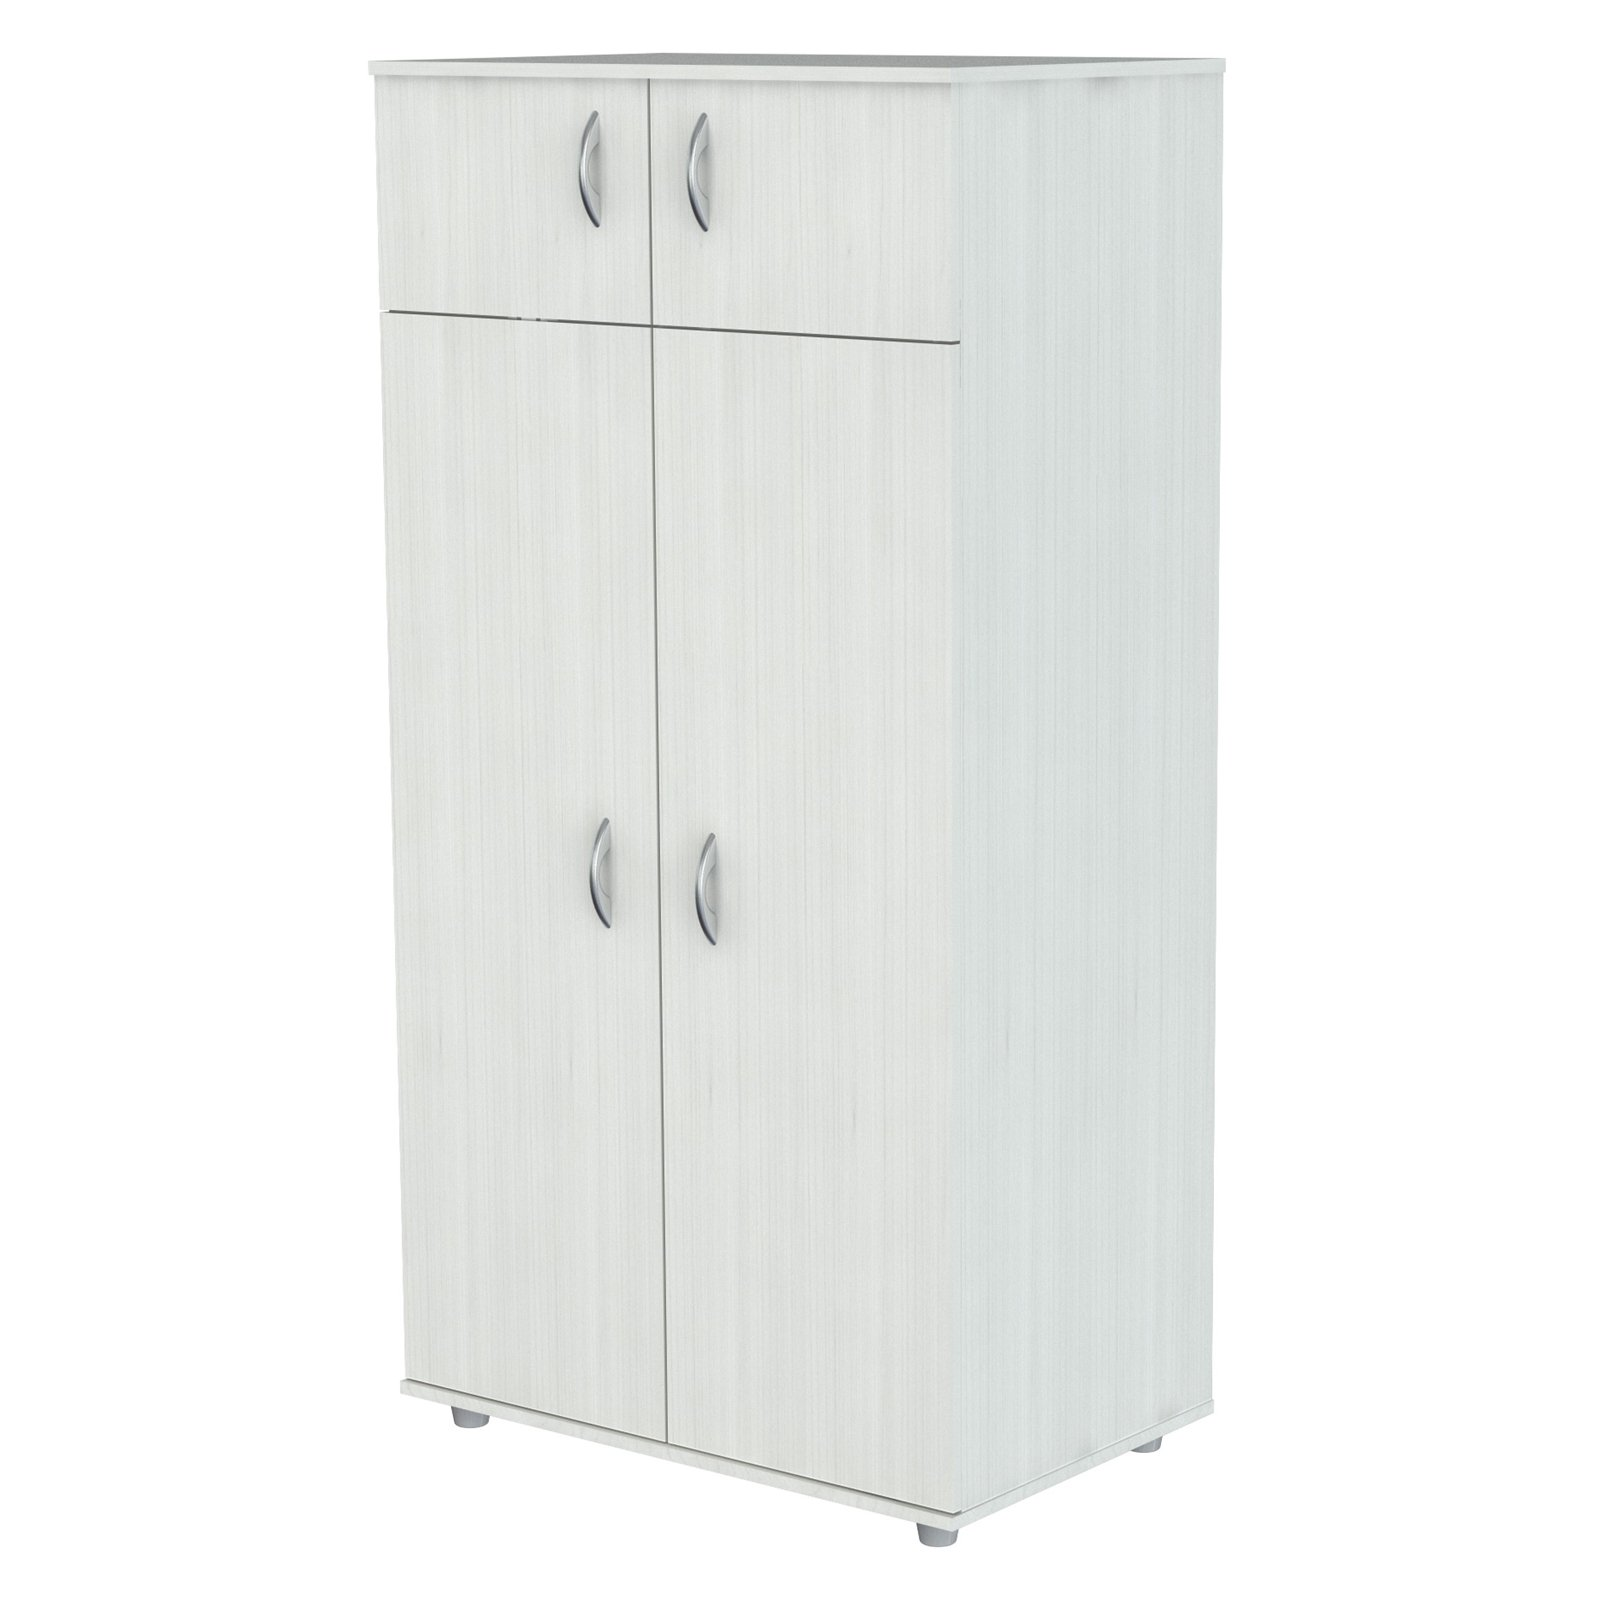 Inval Four-Door Wardrobe Armoire, Larcinia-White by Inval